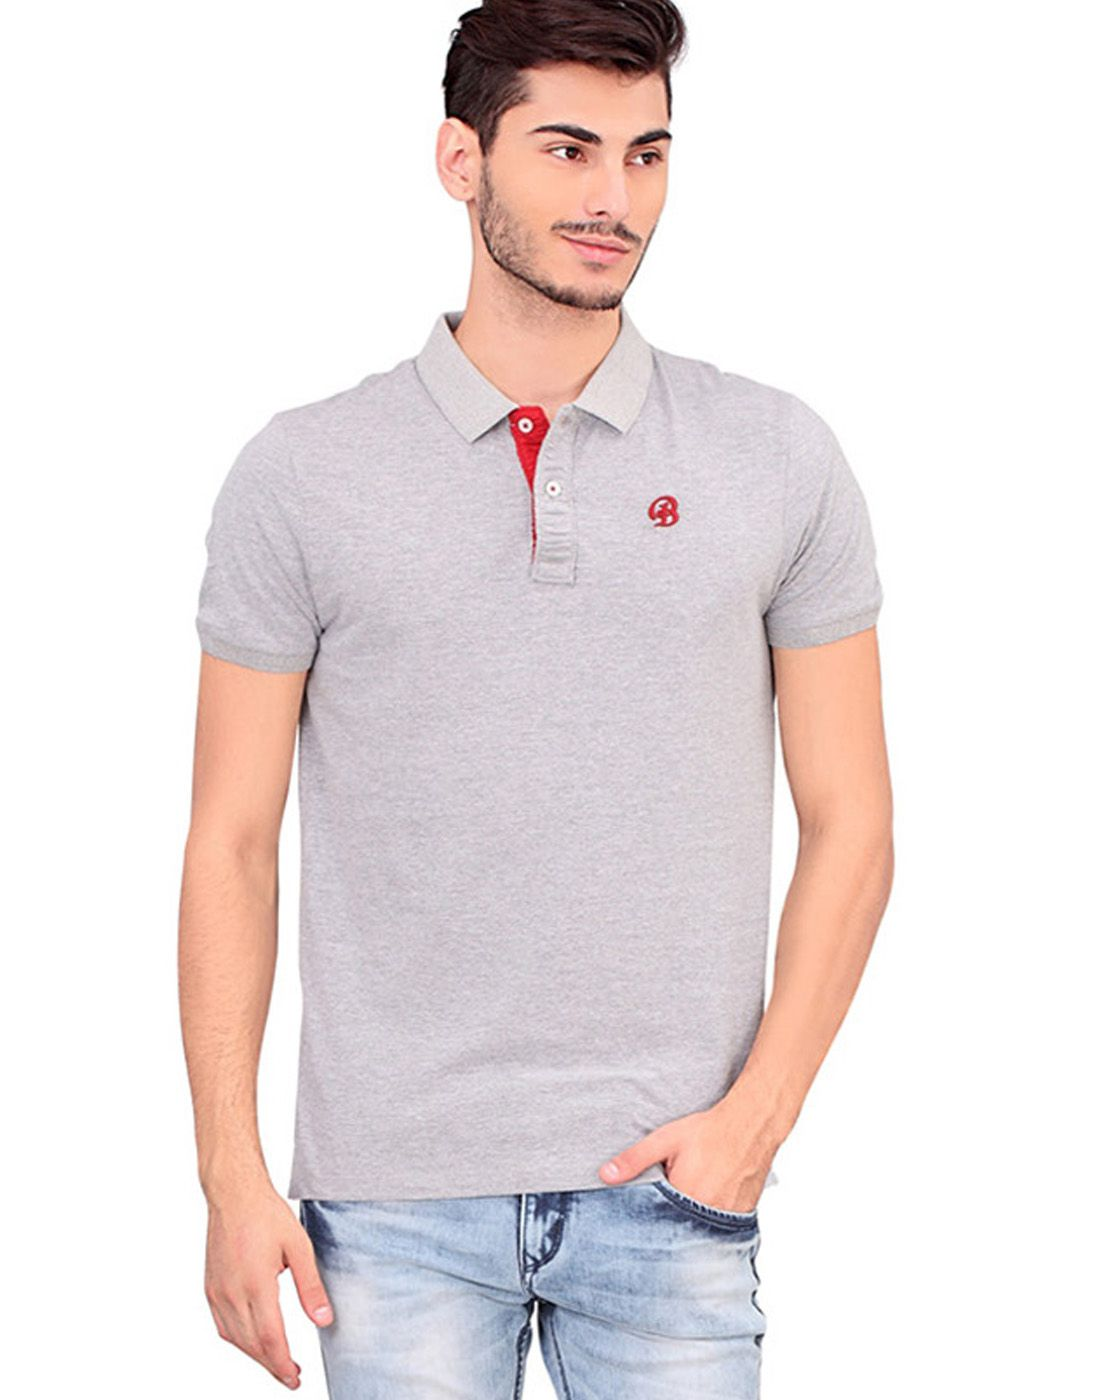 BONATY Grey 100% Cotton Peach Finish Polo Neck Solid T-Shirt For Men